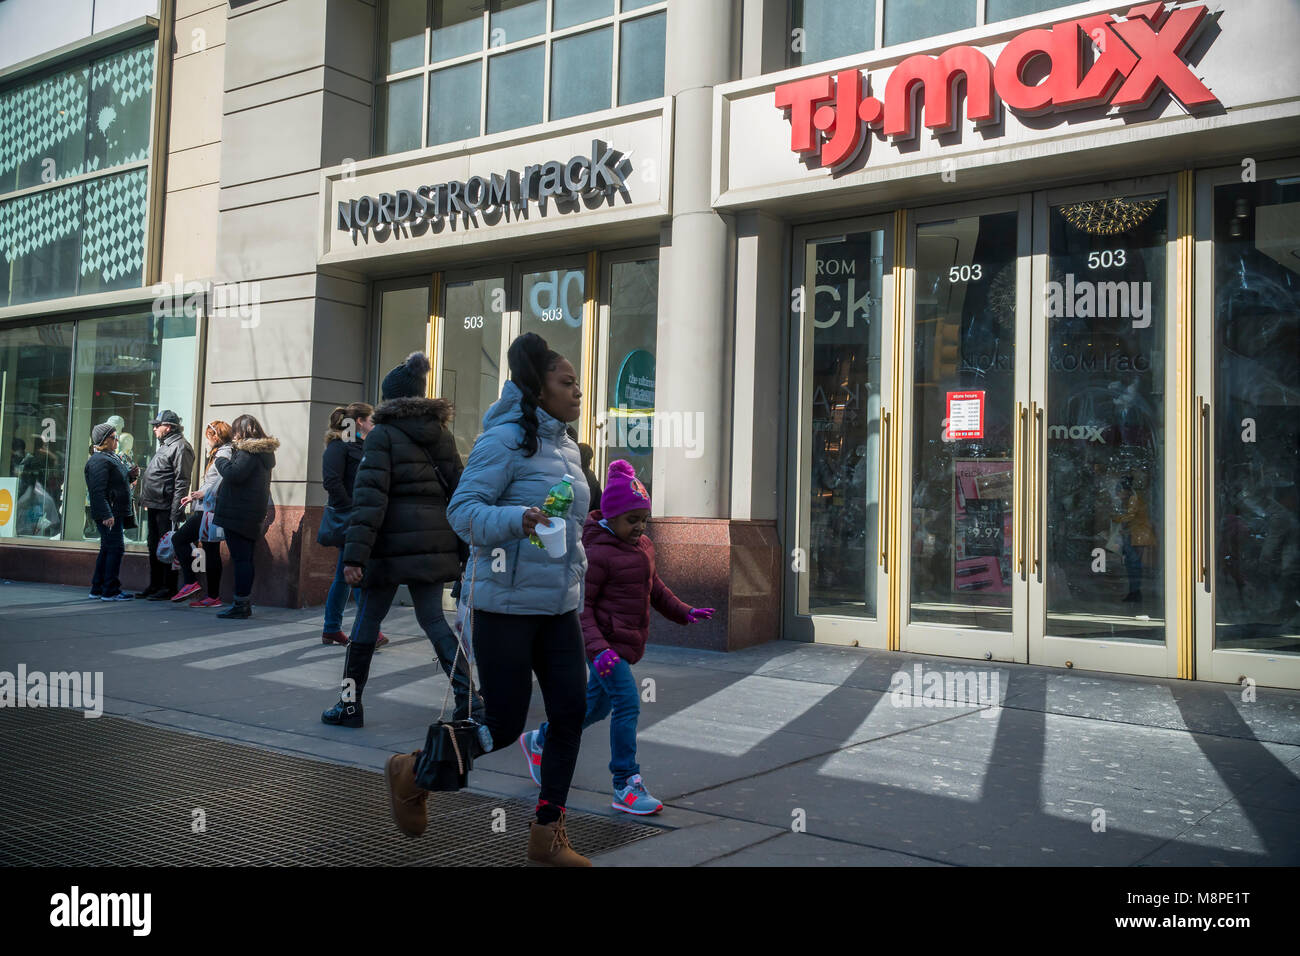 https www alamy com stock photo off price retailers nordstrom rack and tj maxx share space in a building 177514900 html